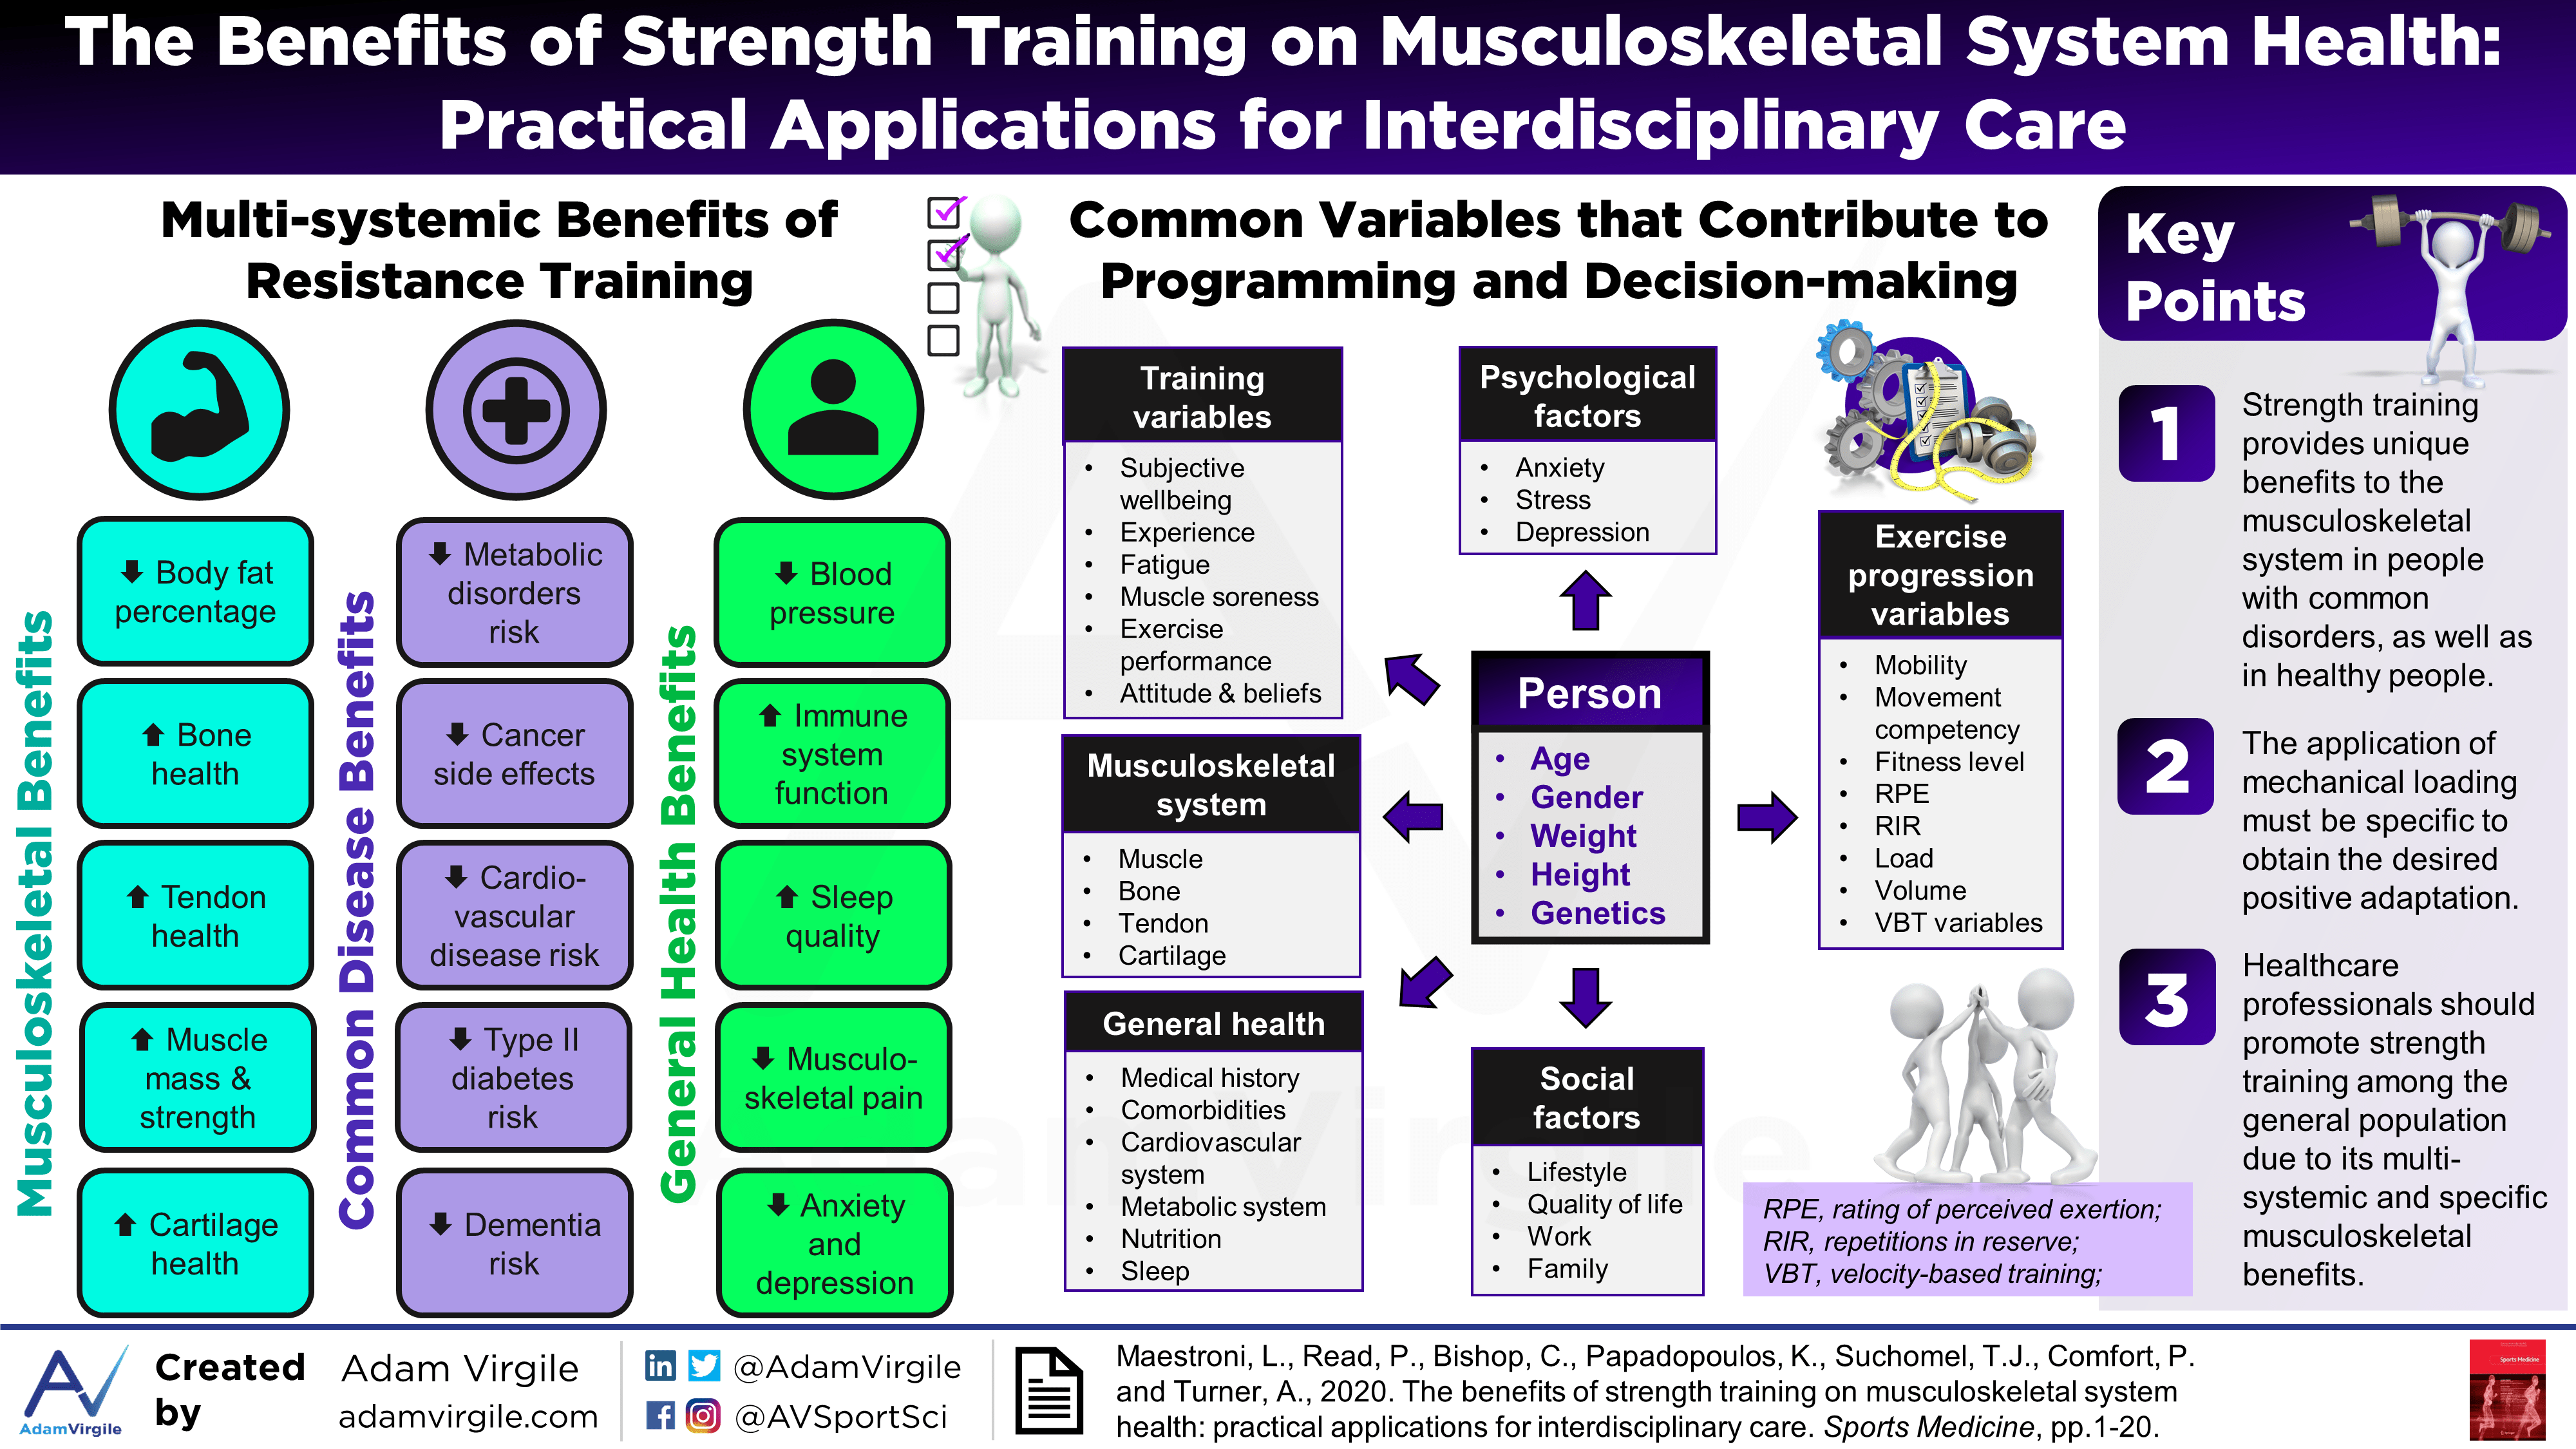 The Benefits of Strength Training on Musculoskeletal System Health: Practical Applications for Interdisciplinary Care